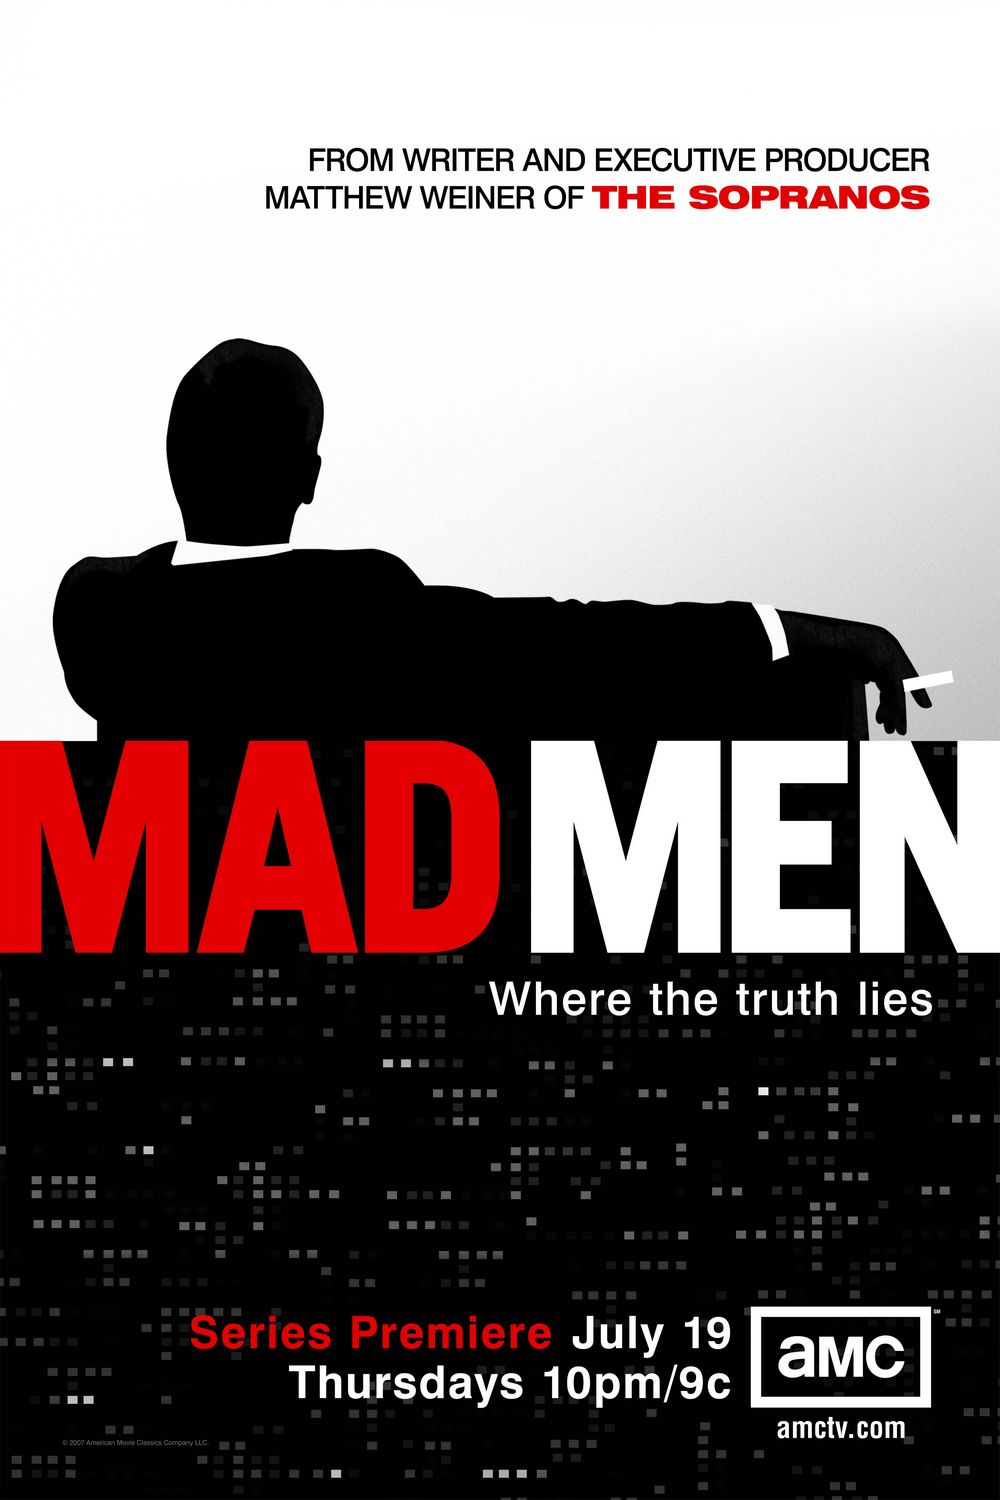 mad men season 1 complete episodes download in hd 720p